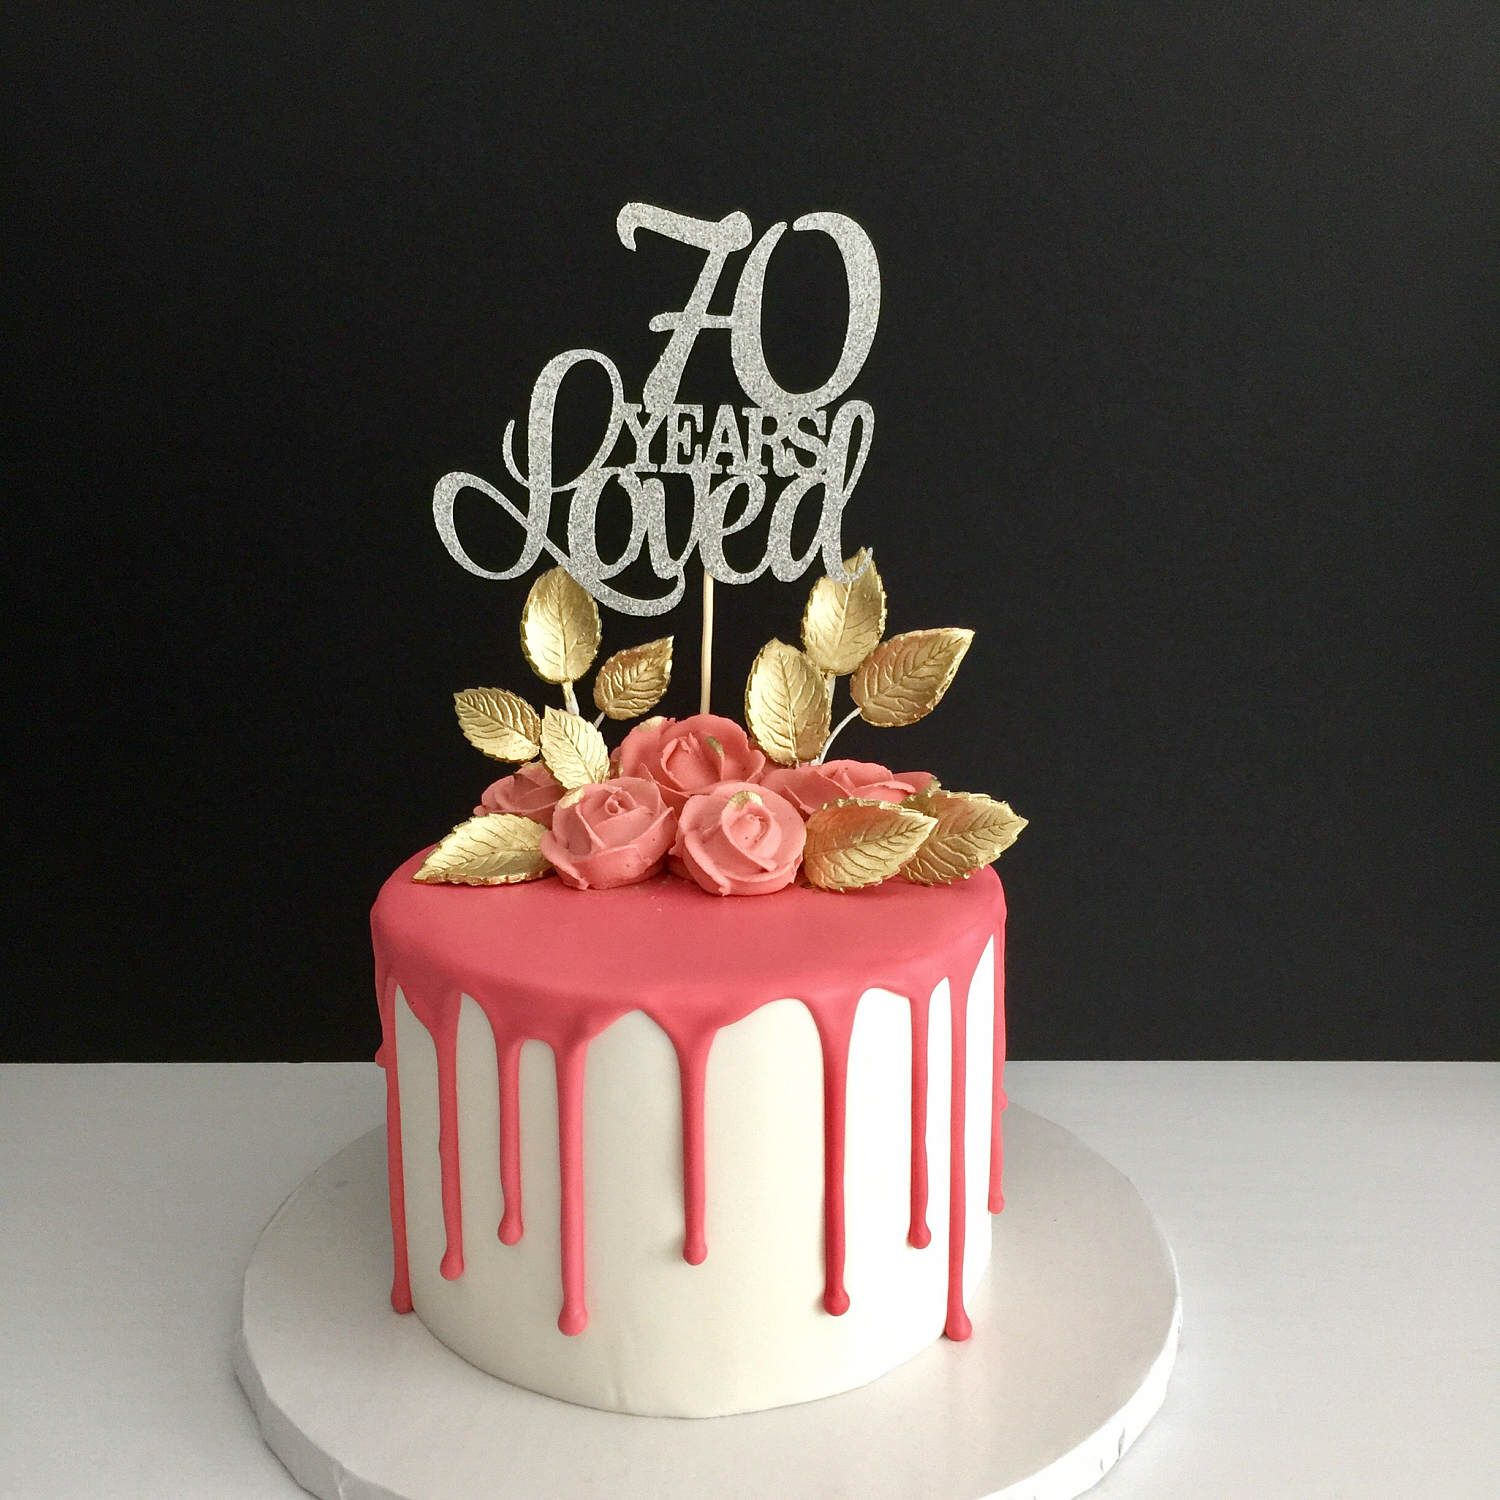 70 Years Loved Cake Topper 70th Birthday Cake Topper